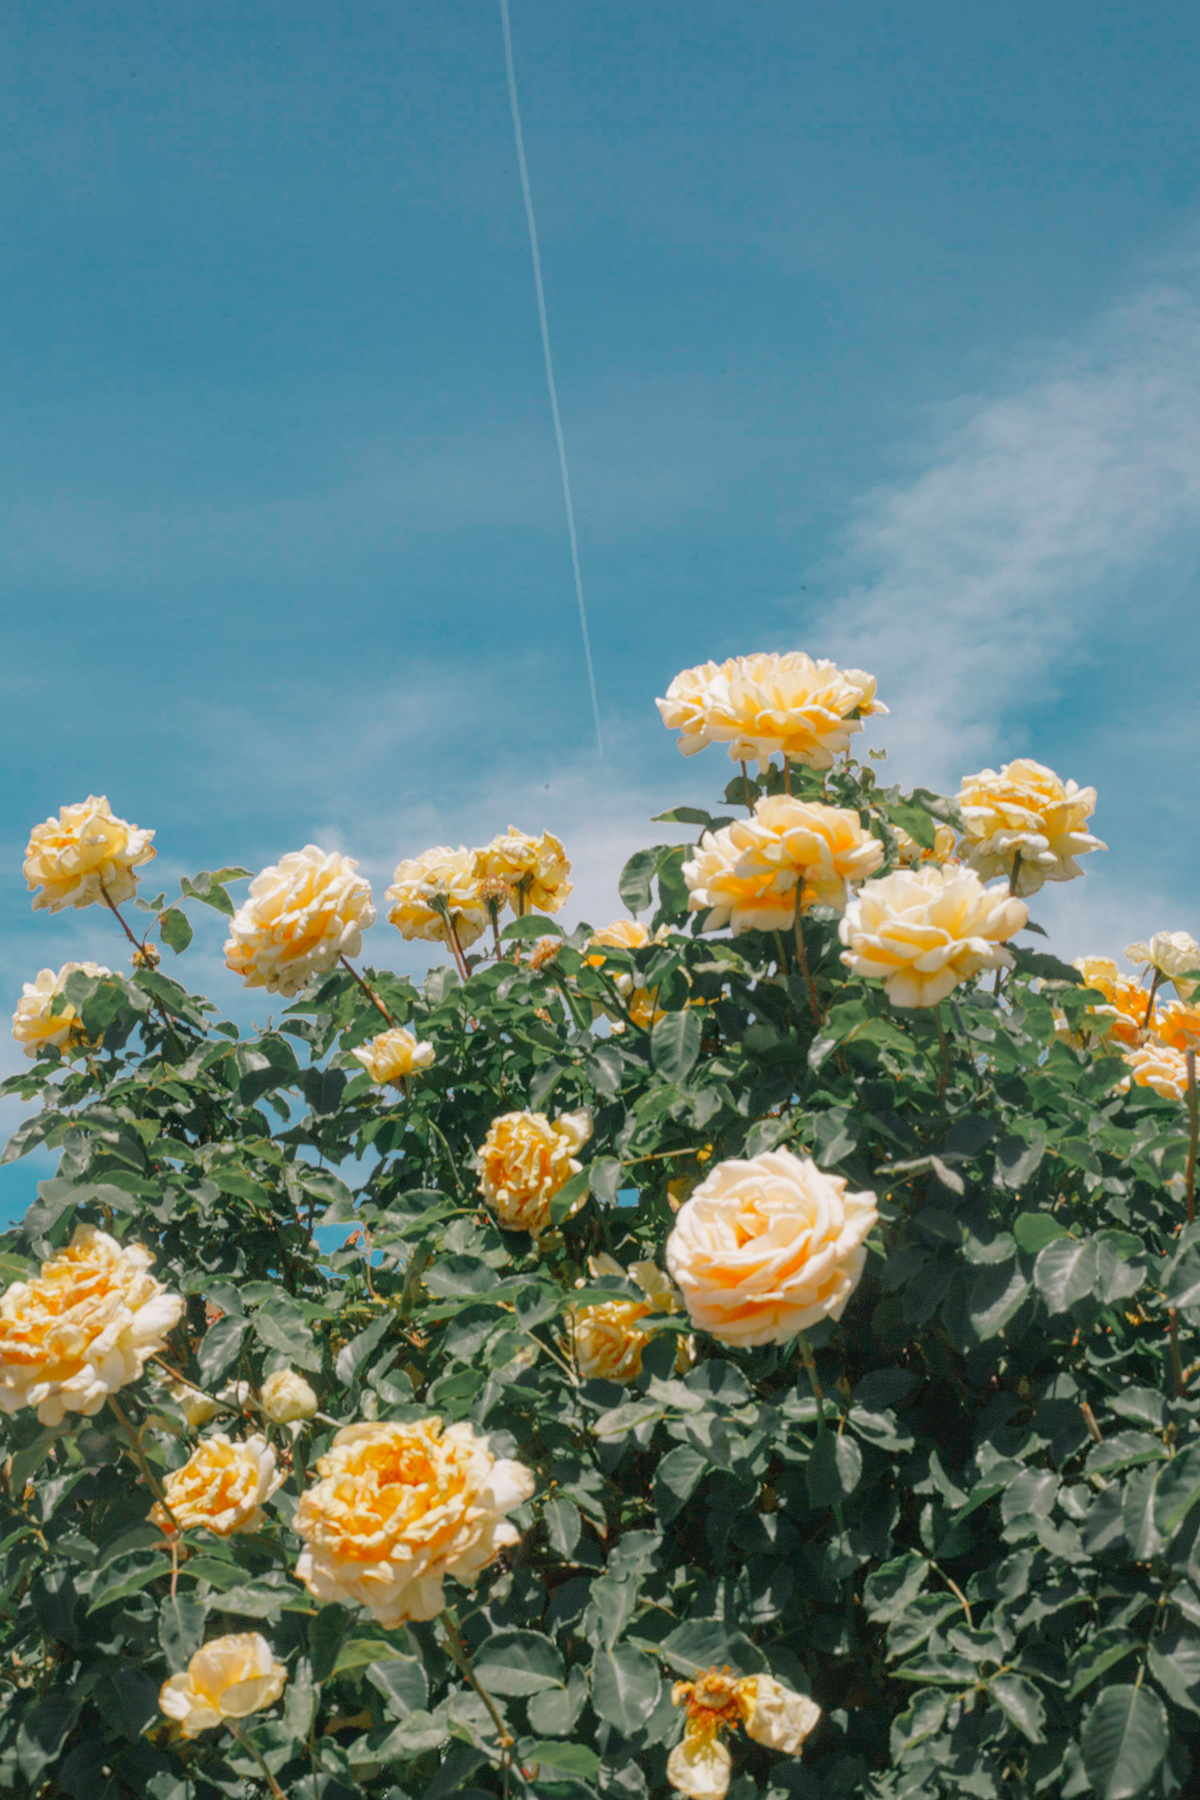 Burst of yellow roses on a bush against a blue sky with cloud wisps and a single vapor trail